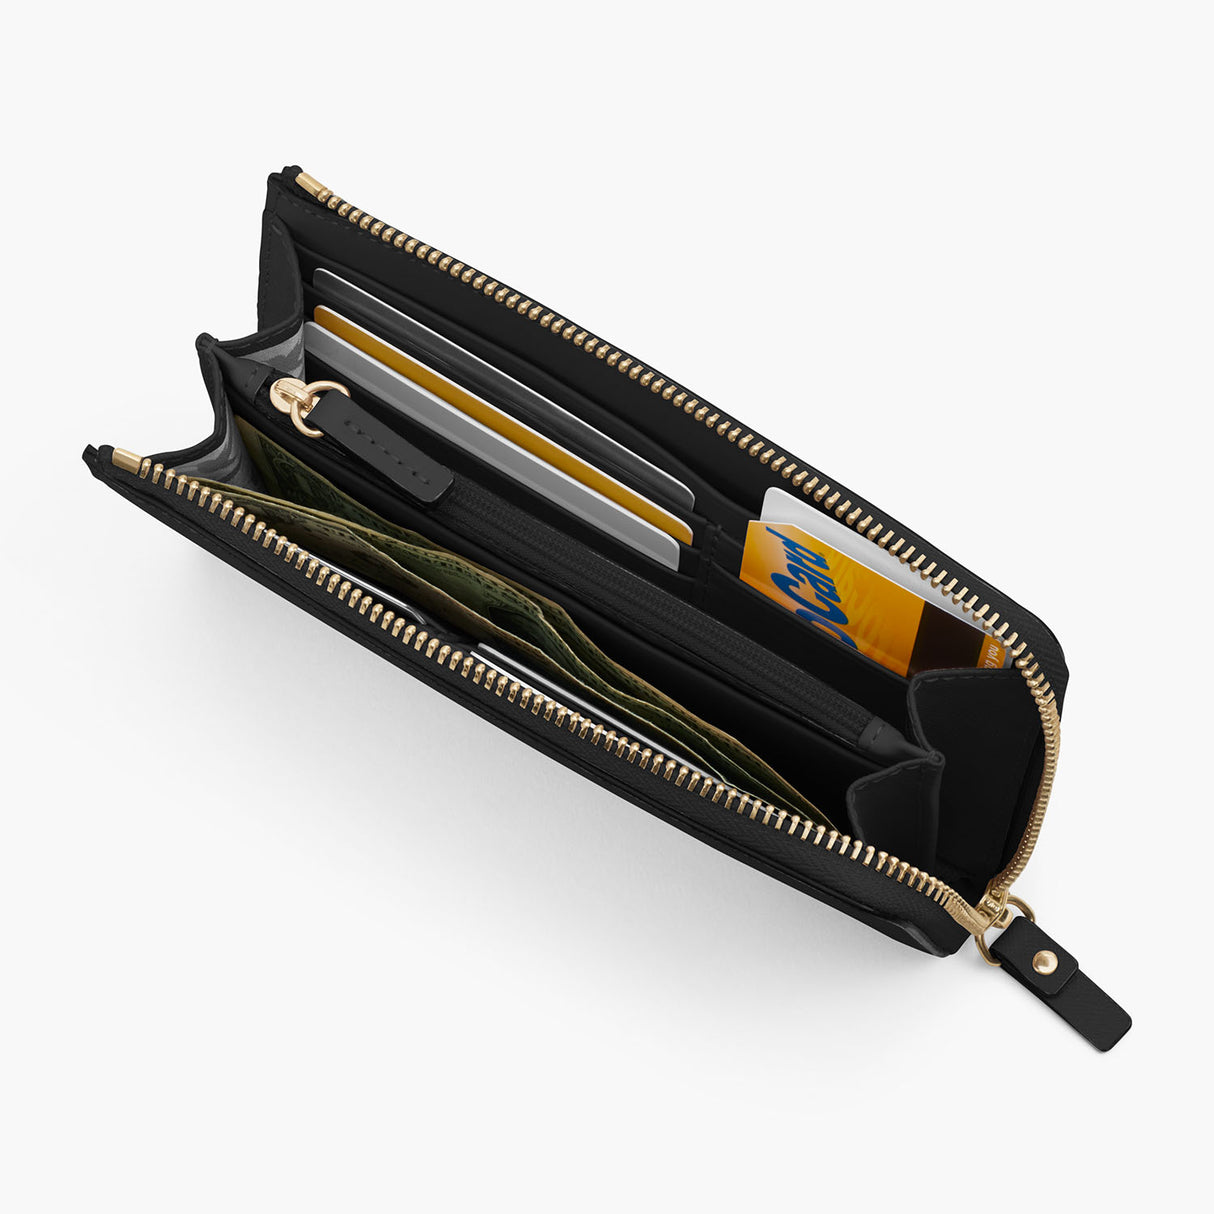 Interior 1 Propped - The Leather Wallet - Saffiano Leather - Black / Gold / Grey - Small Accessory - Lo & Sons